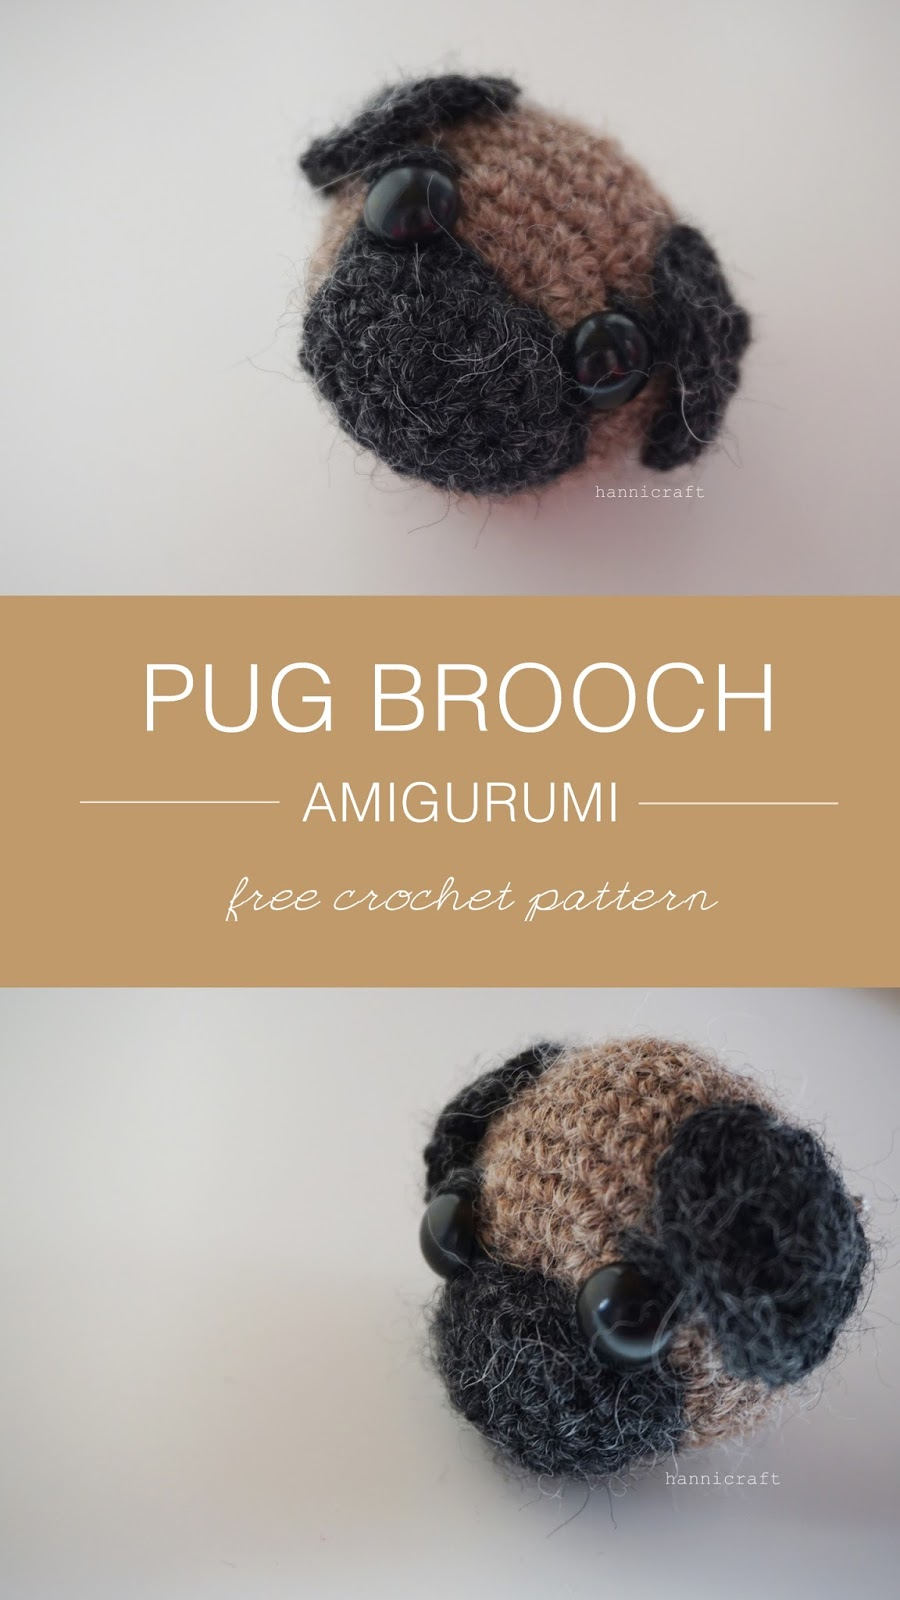 Pug Brooch Amigurumi Free Crochet Pattern from hannicraft - Pin for later!